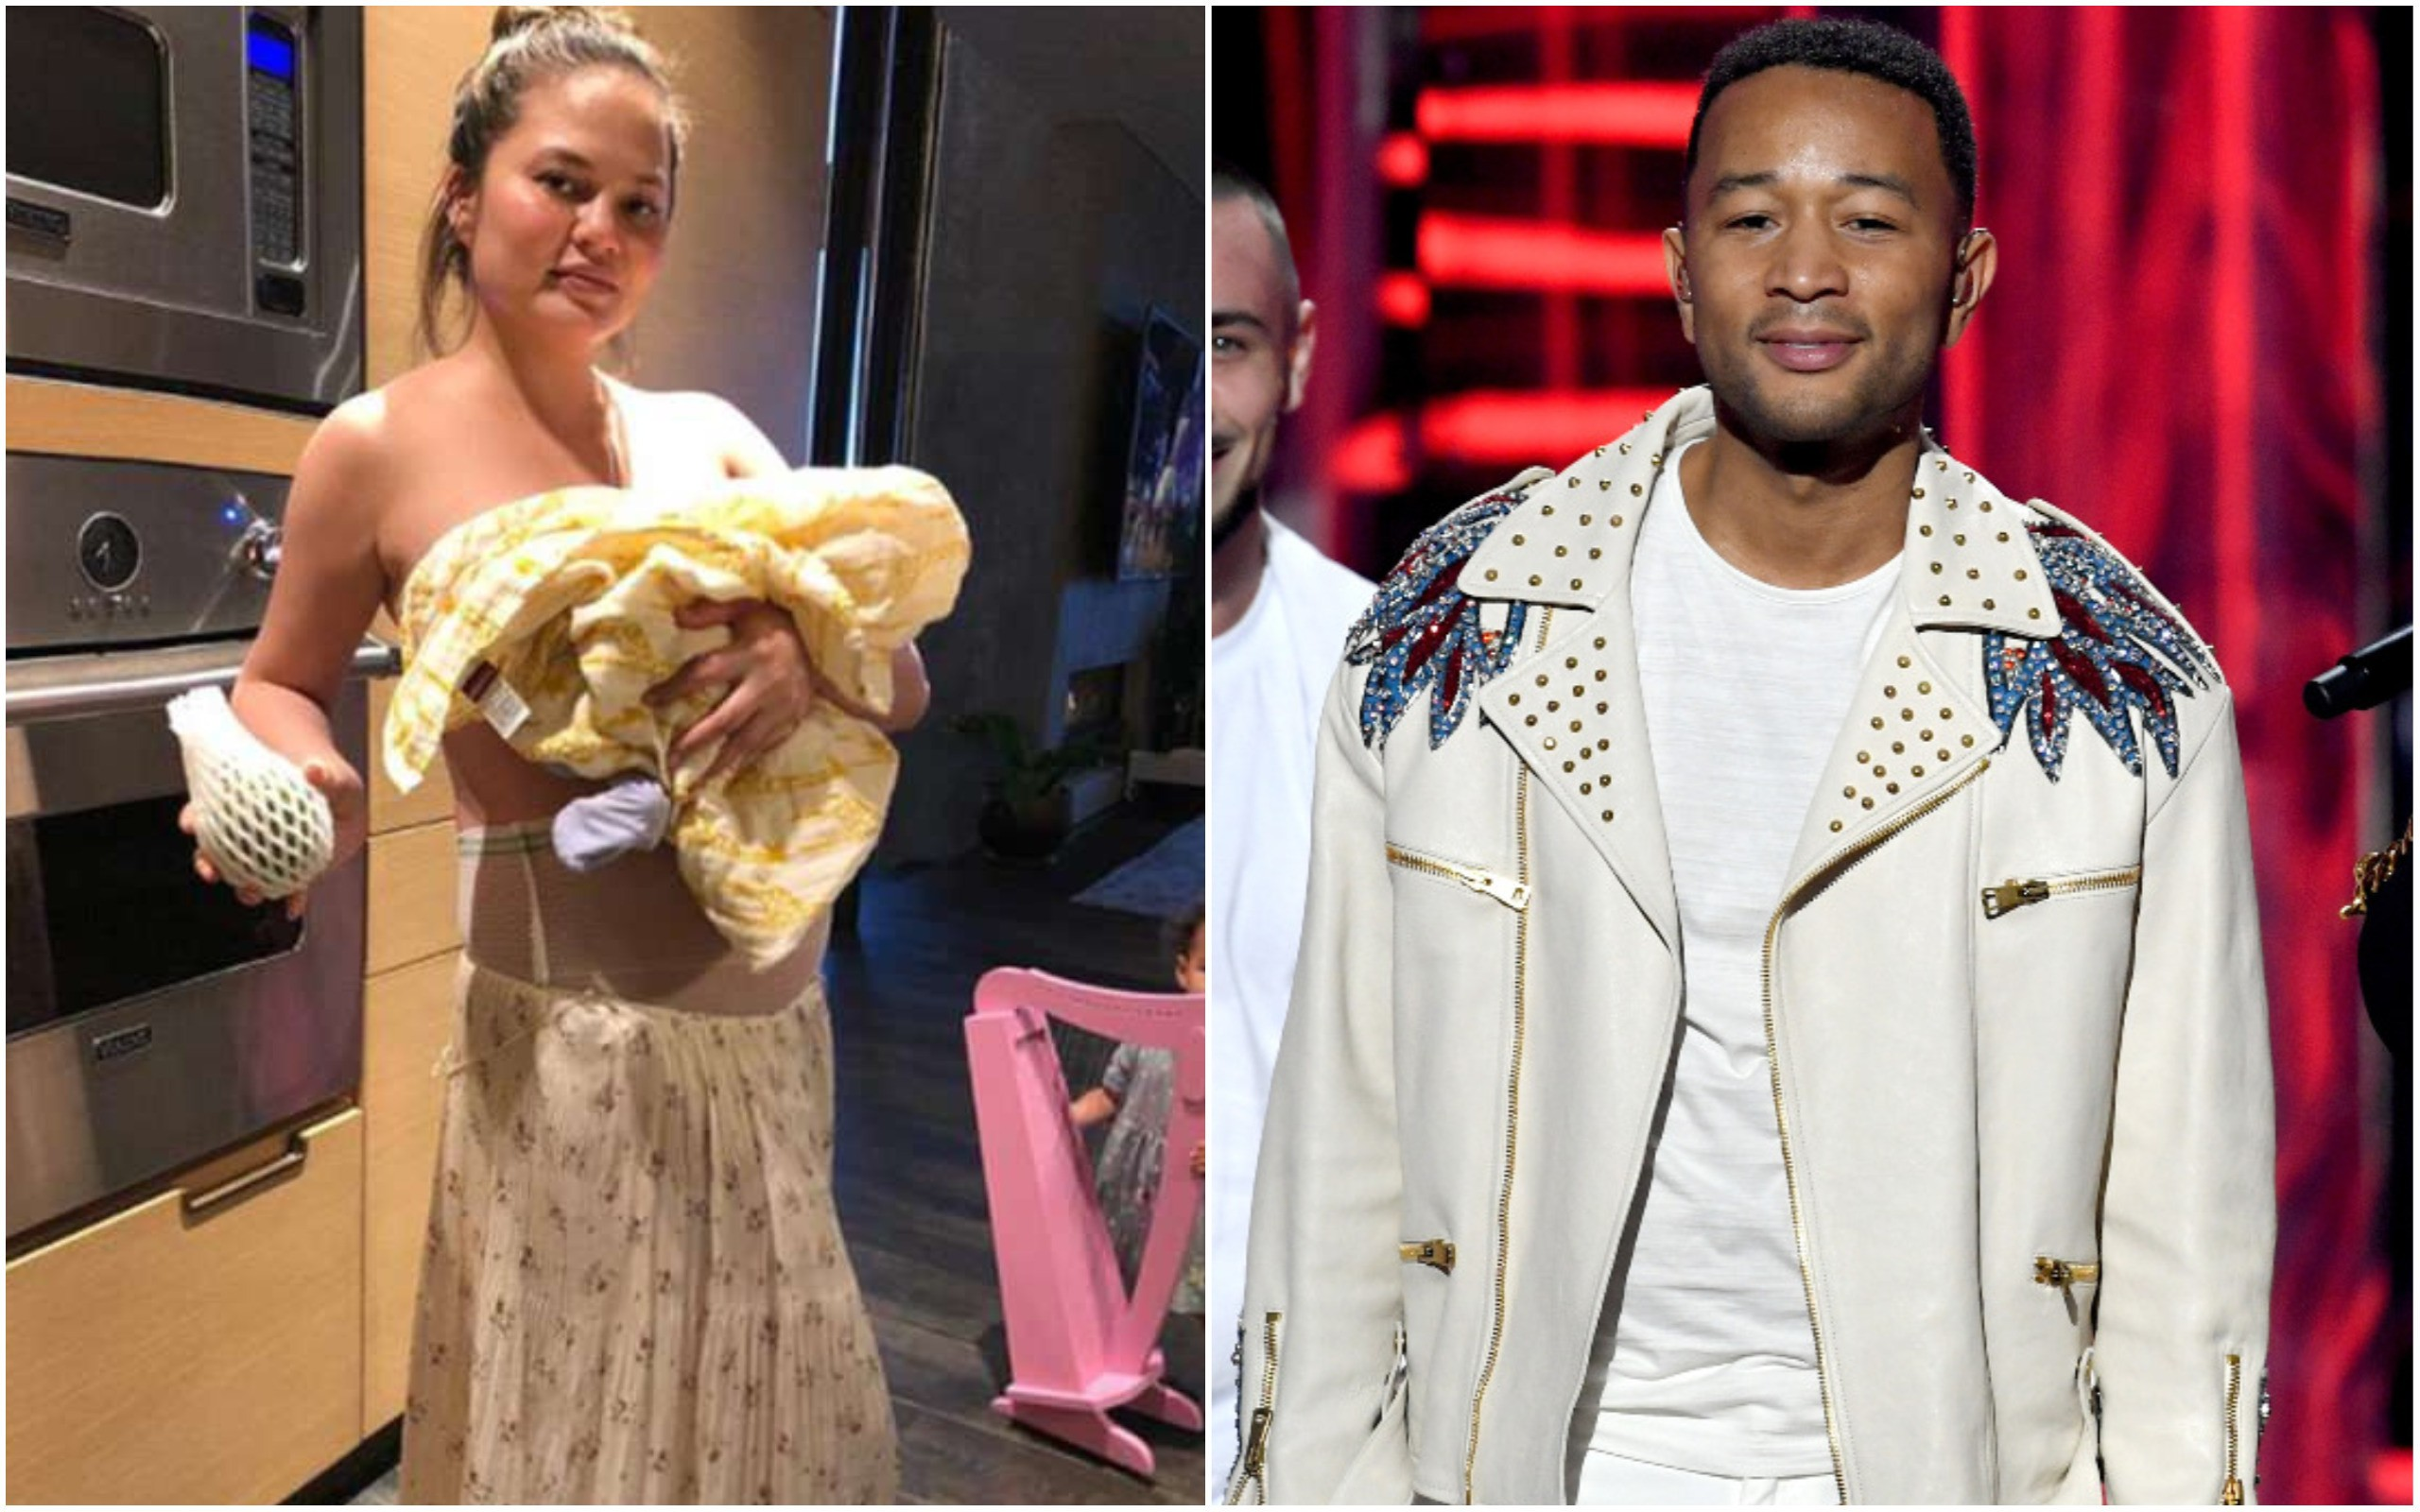 Chrissy Teigen e John Legend (Foto: Getty Images / Instagram)